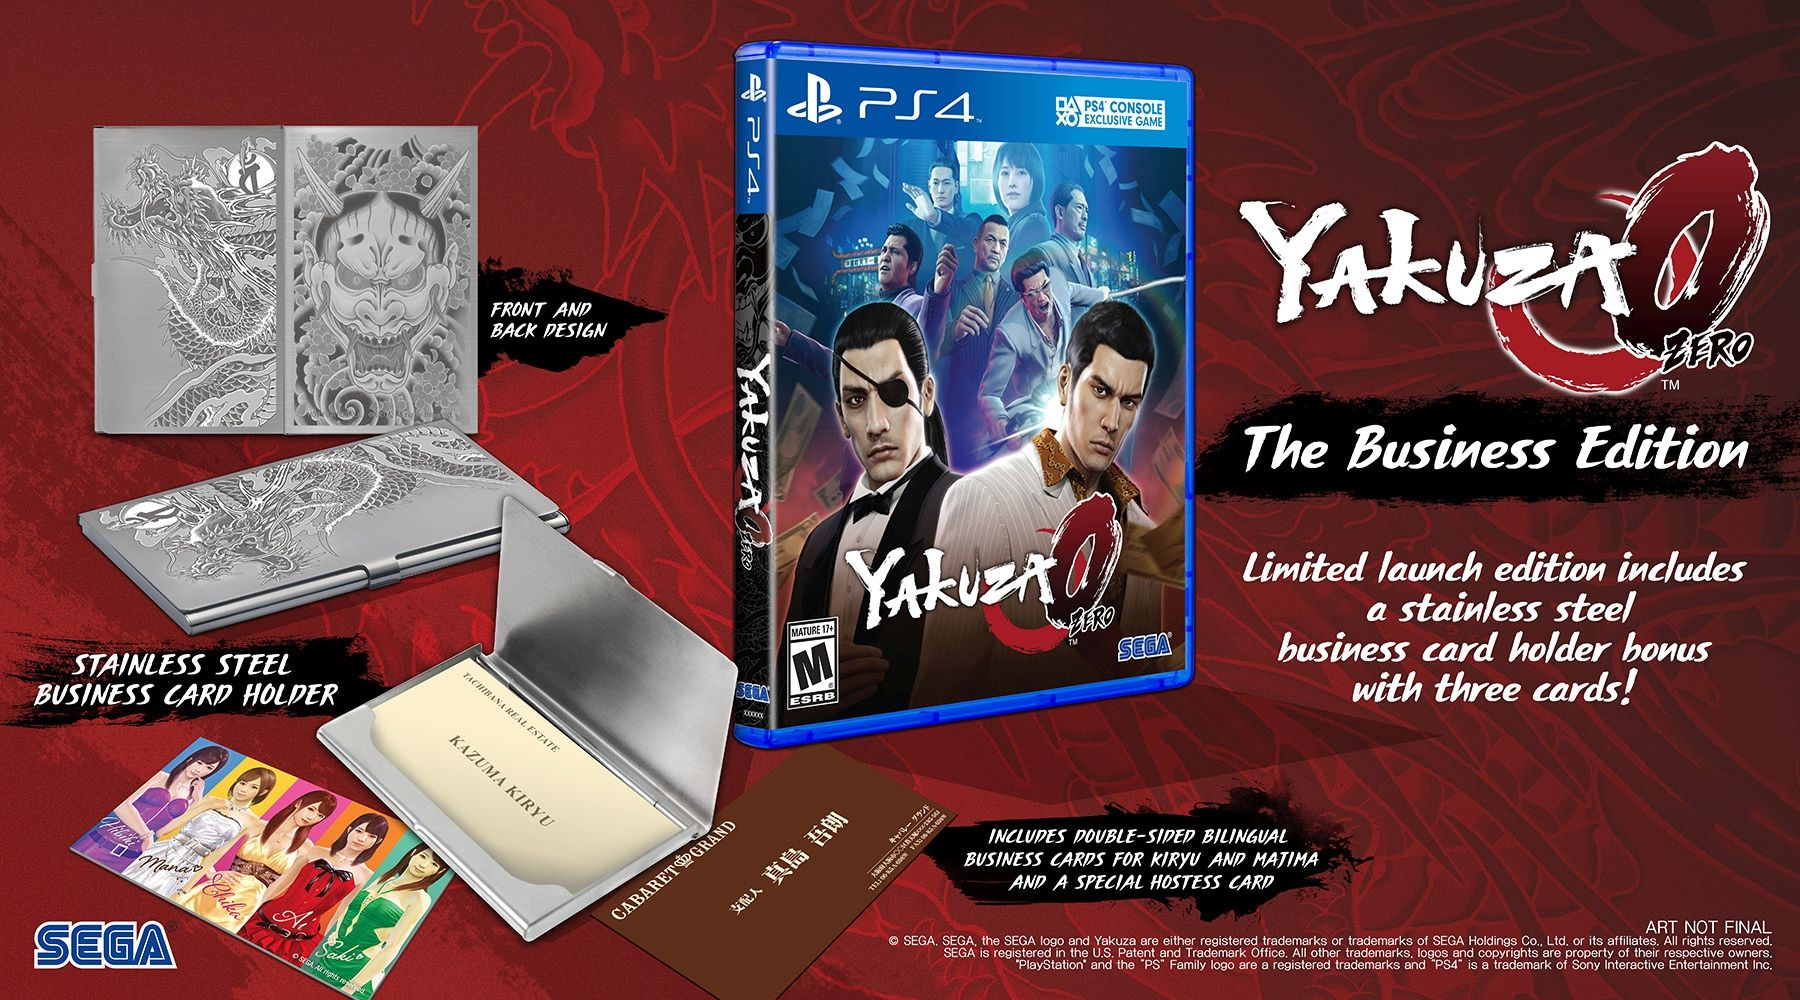 Yakuza 0 Special Edition Includes Custom Business Cards  Sega has just announced a limited-run special edition of the upcoming Yakuza 0 including some interesting collectibles to make you feel like you're part of the shadowy gangster organization.  The Business Edition features a stainless steel business card holder adorned with the tattoos of two of the game's main characters Kazuma Kiryu and Goro Majima. And yes you'll also get their business cards tucked inside in addition to a…